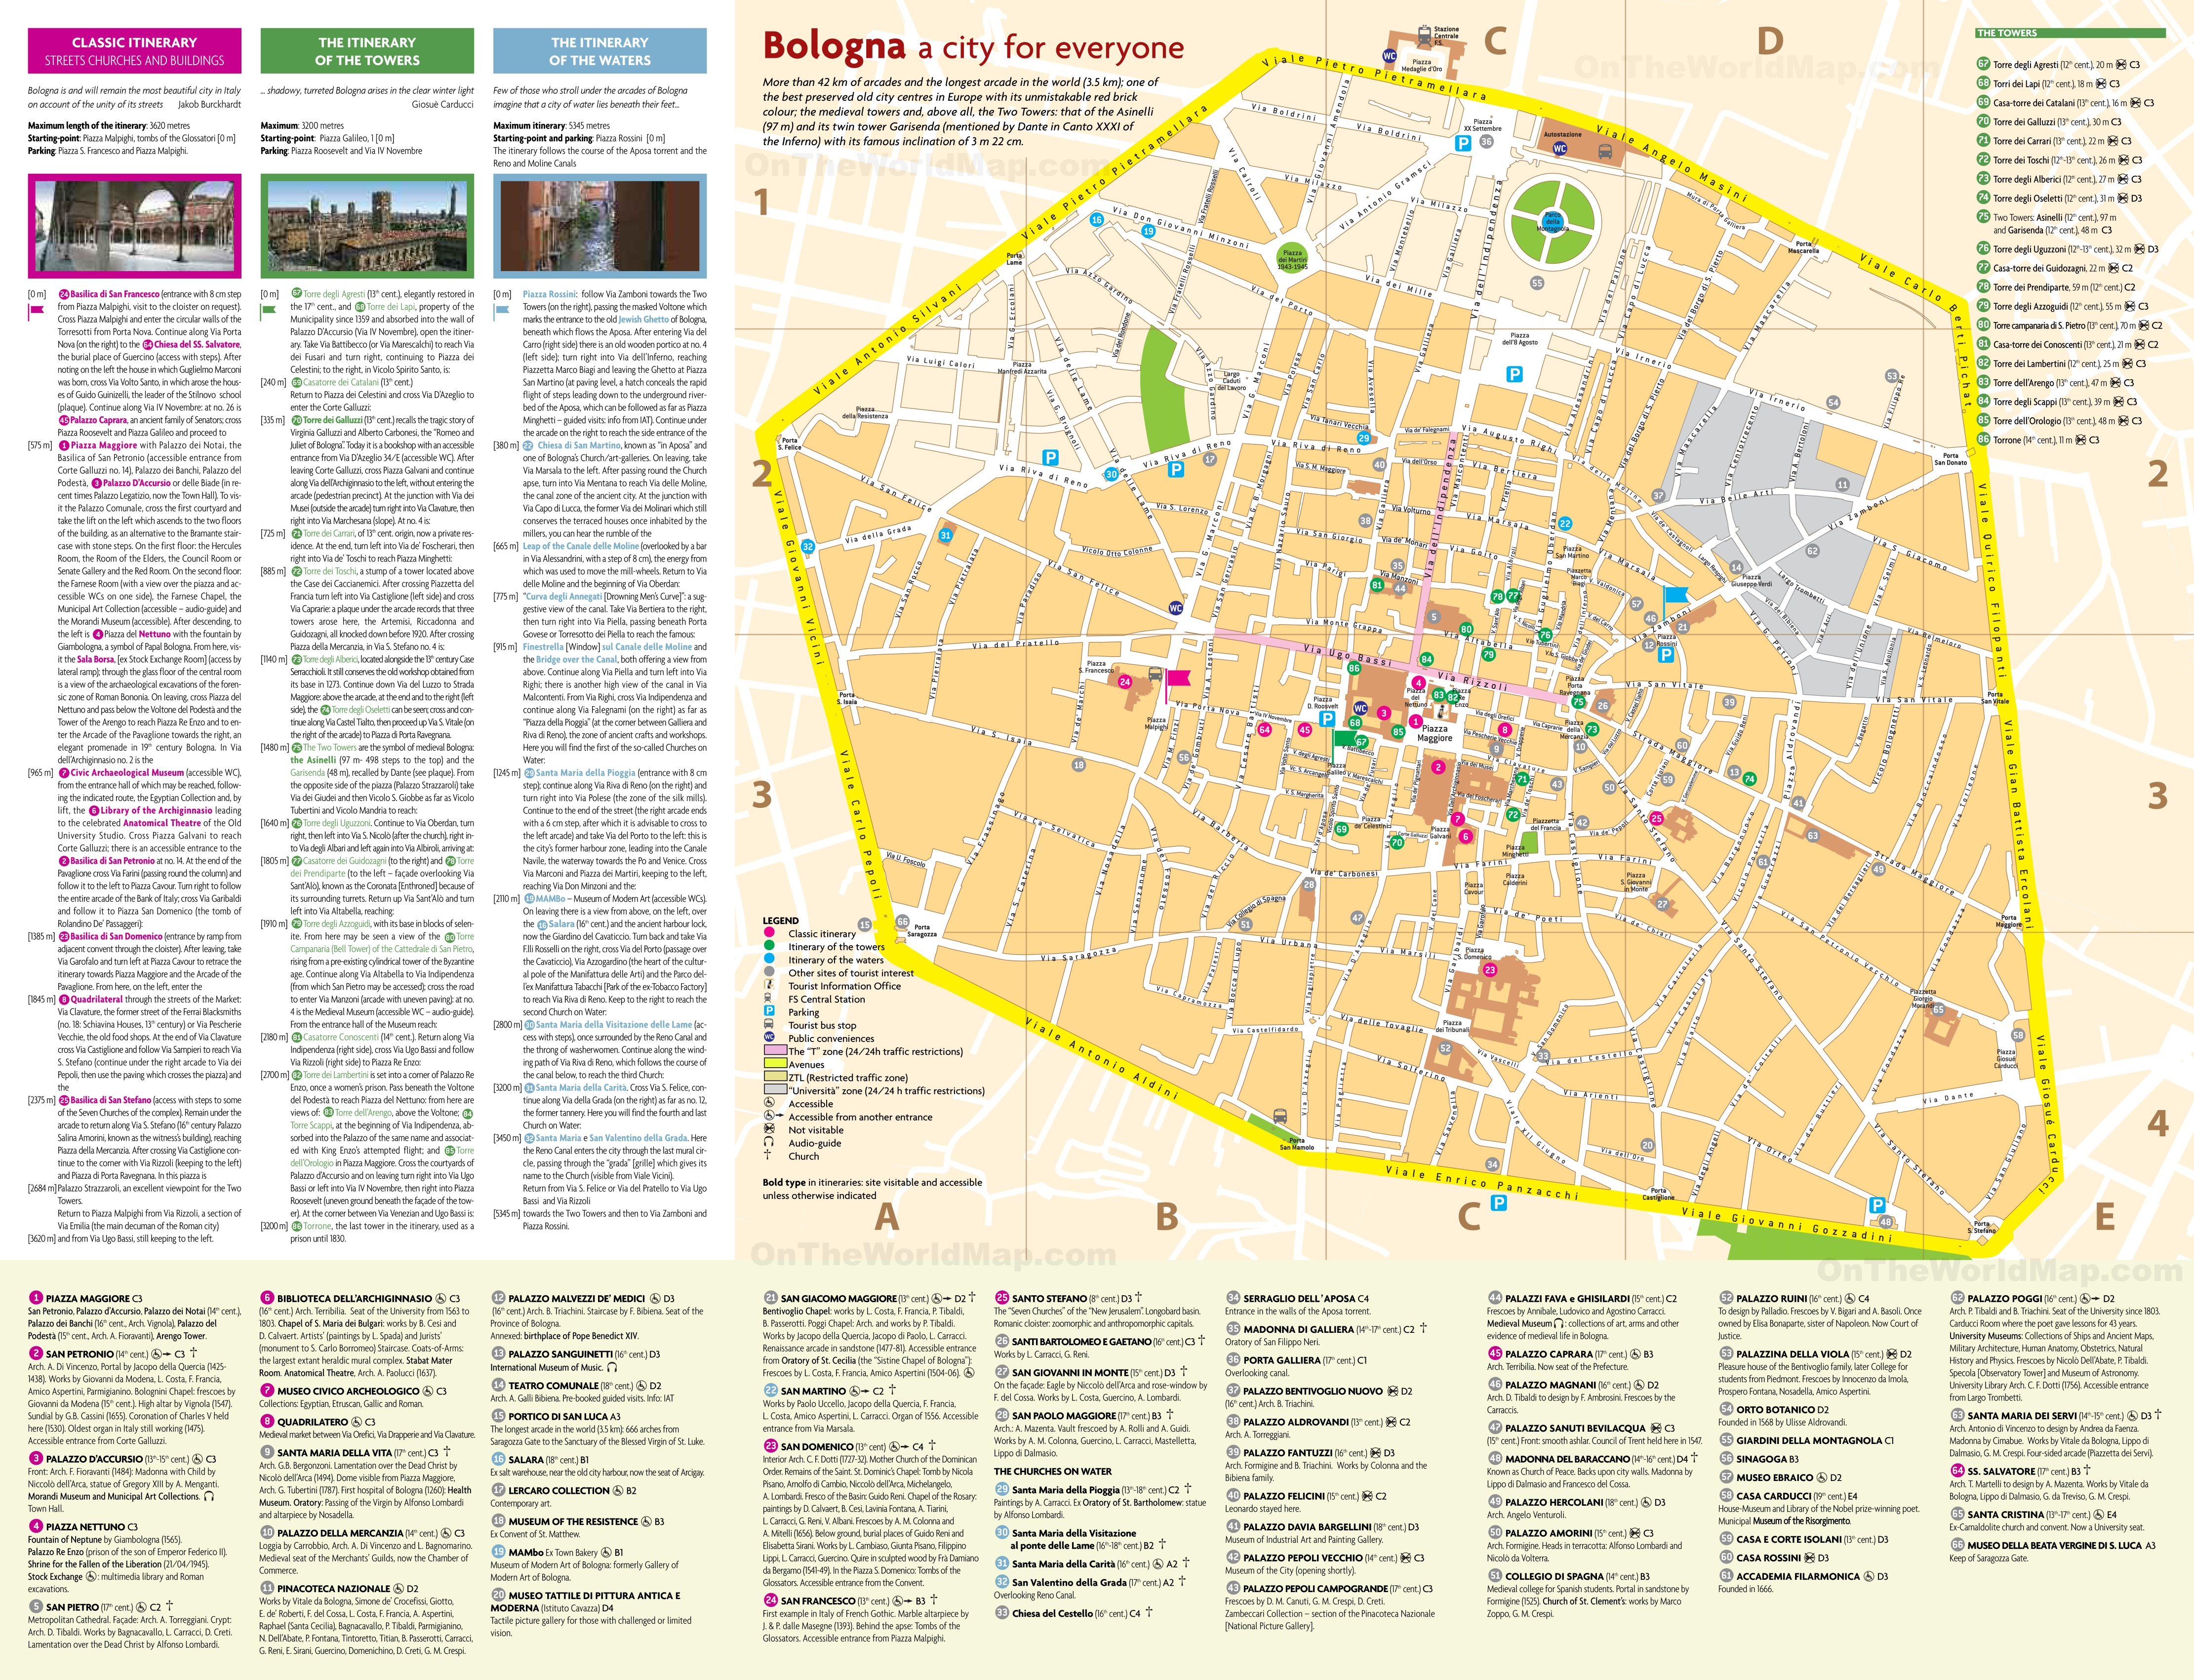 Bologna City Centre Map - Printable Map Of Bologna City Centre